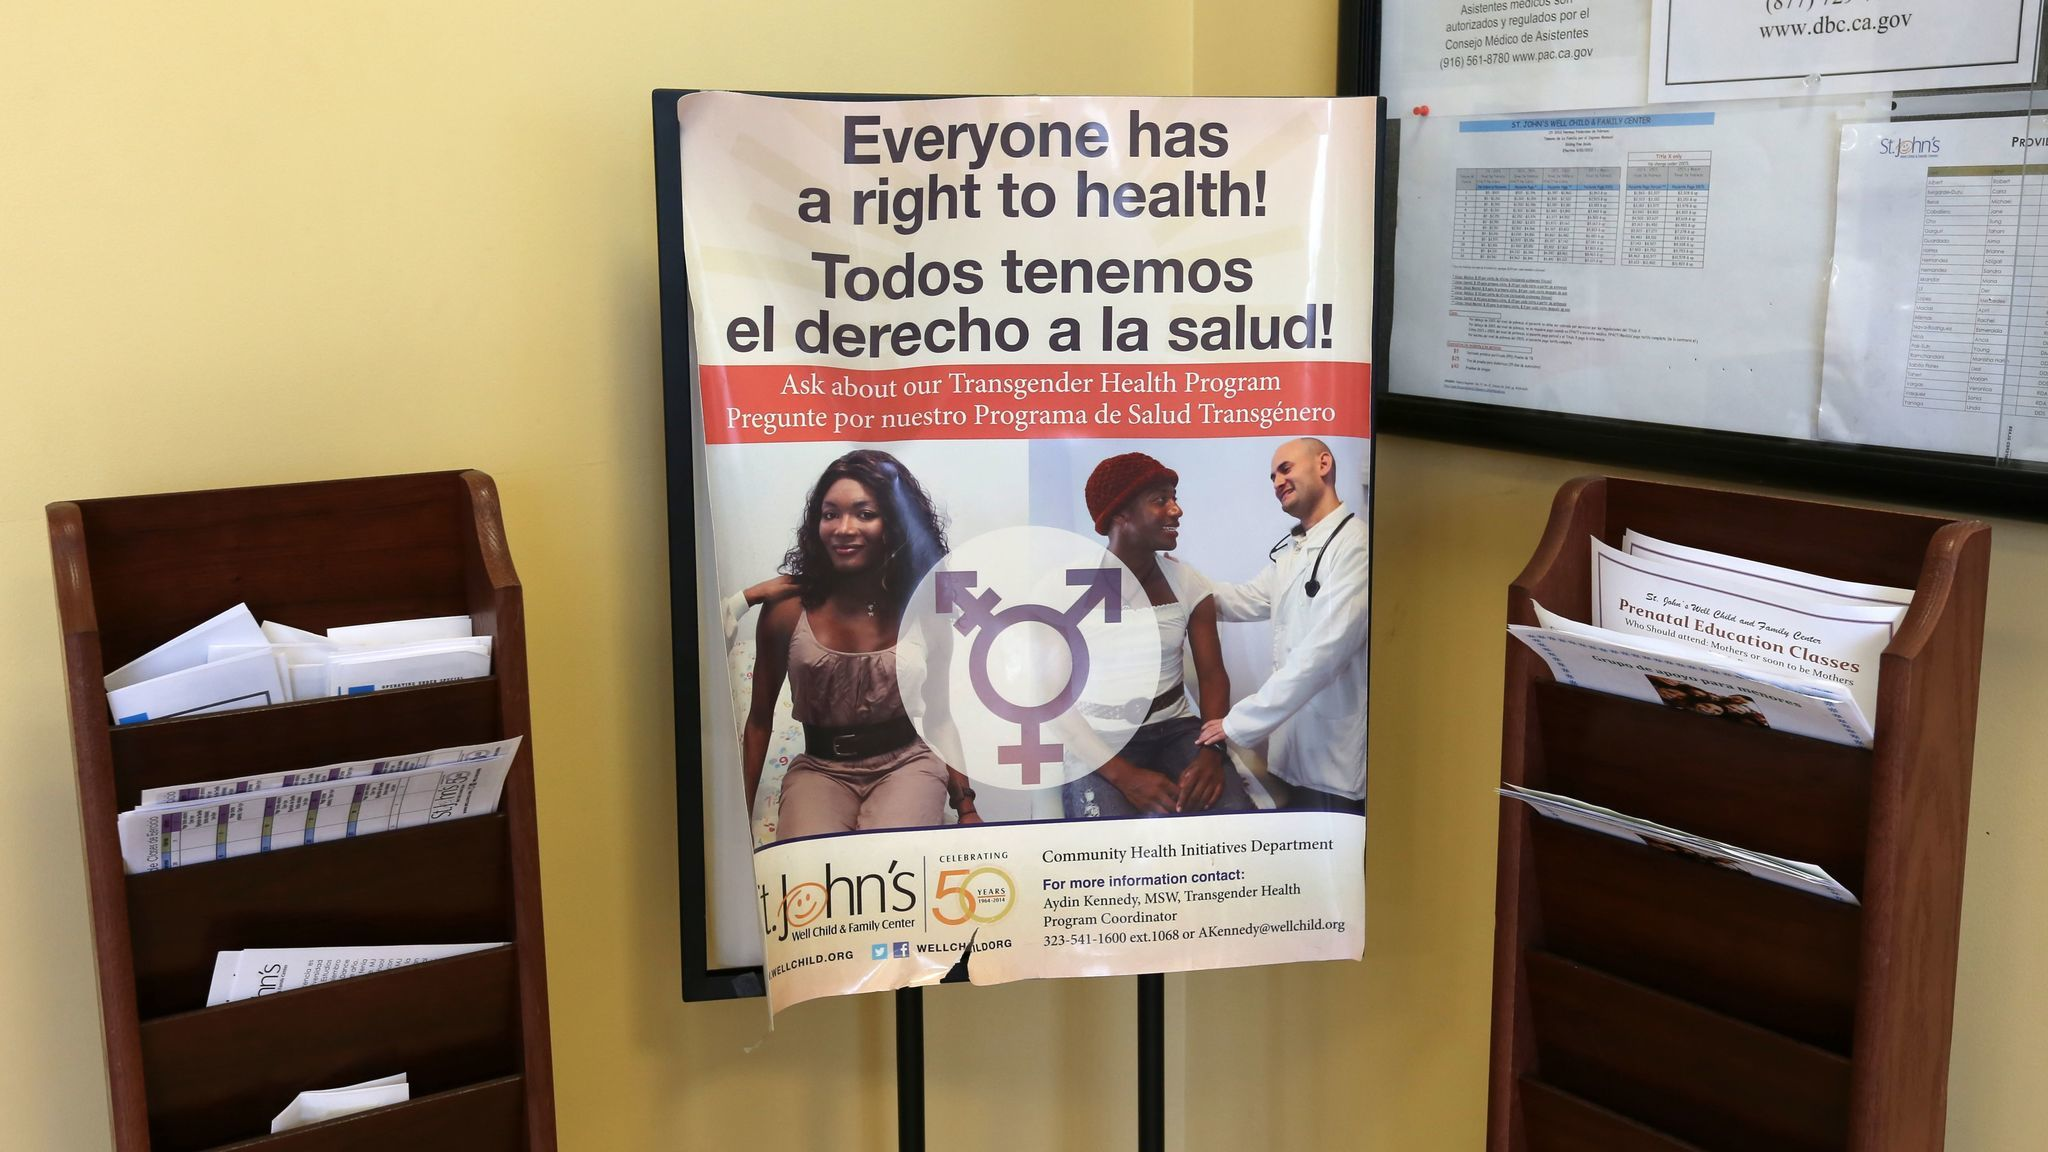 A poster advertises a transgender health program at St. John's in South L.A. The clinic provides culturally appropriate services to the local transgender community, whose members often can't afford the expensive medical care they require.